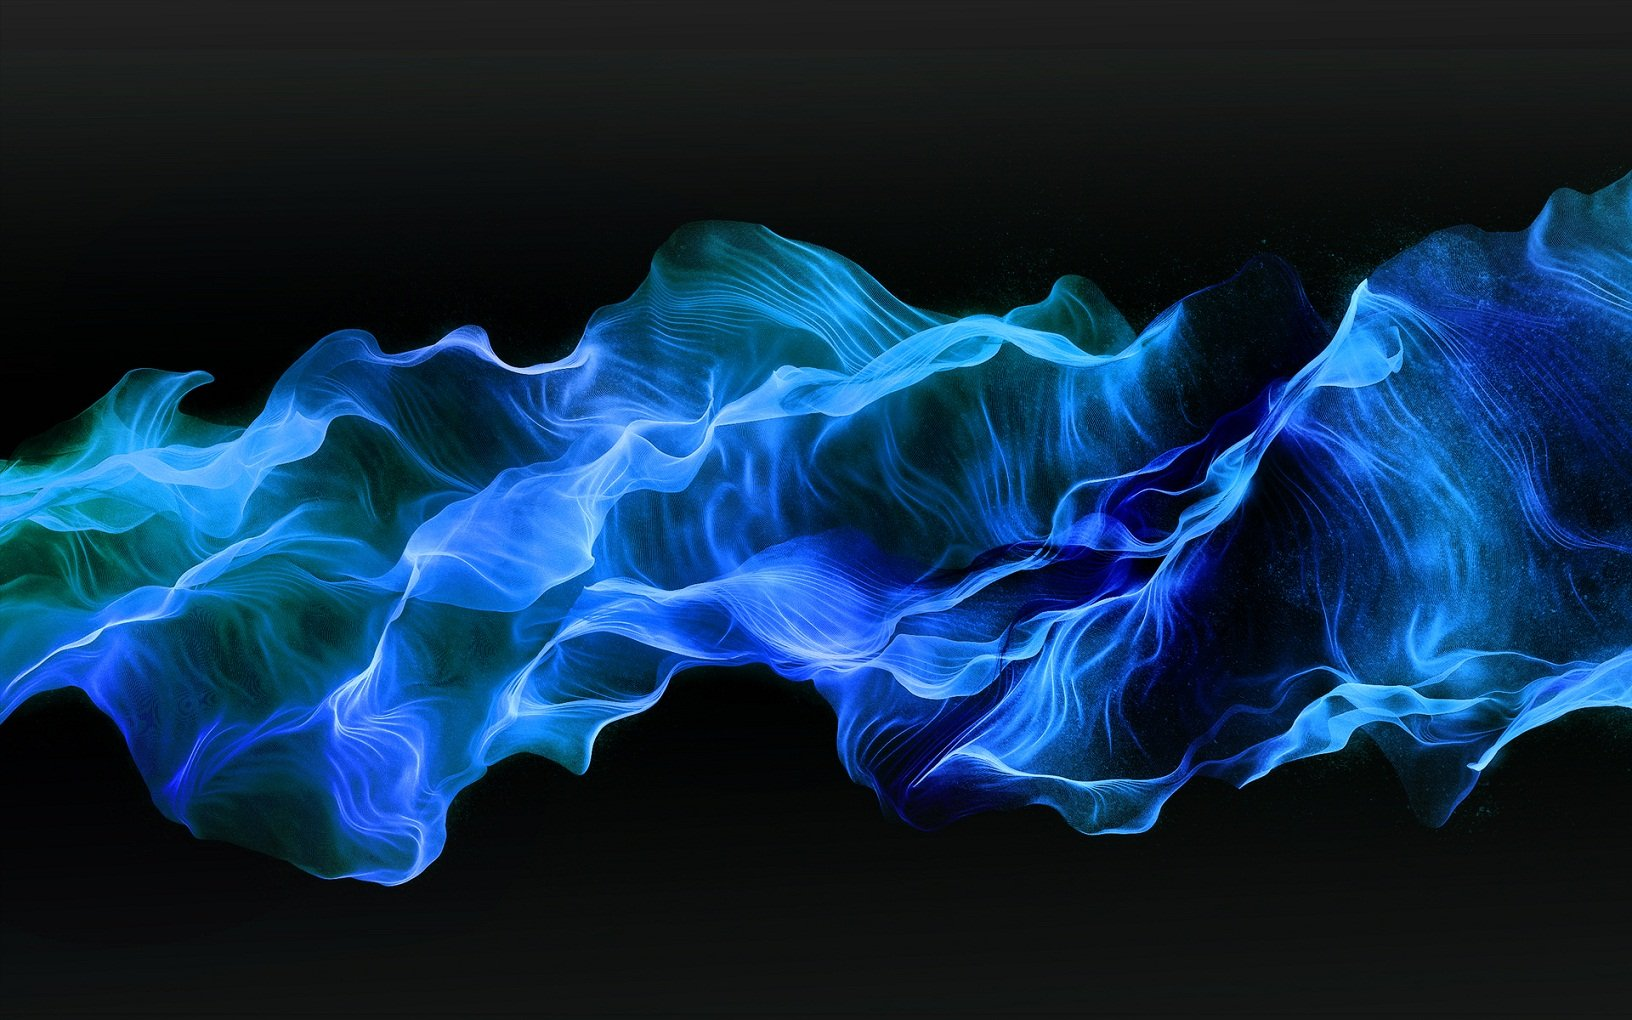 abstract blue fire wallpaper   Wallpapers 1632x1020